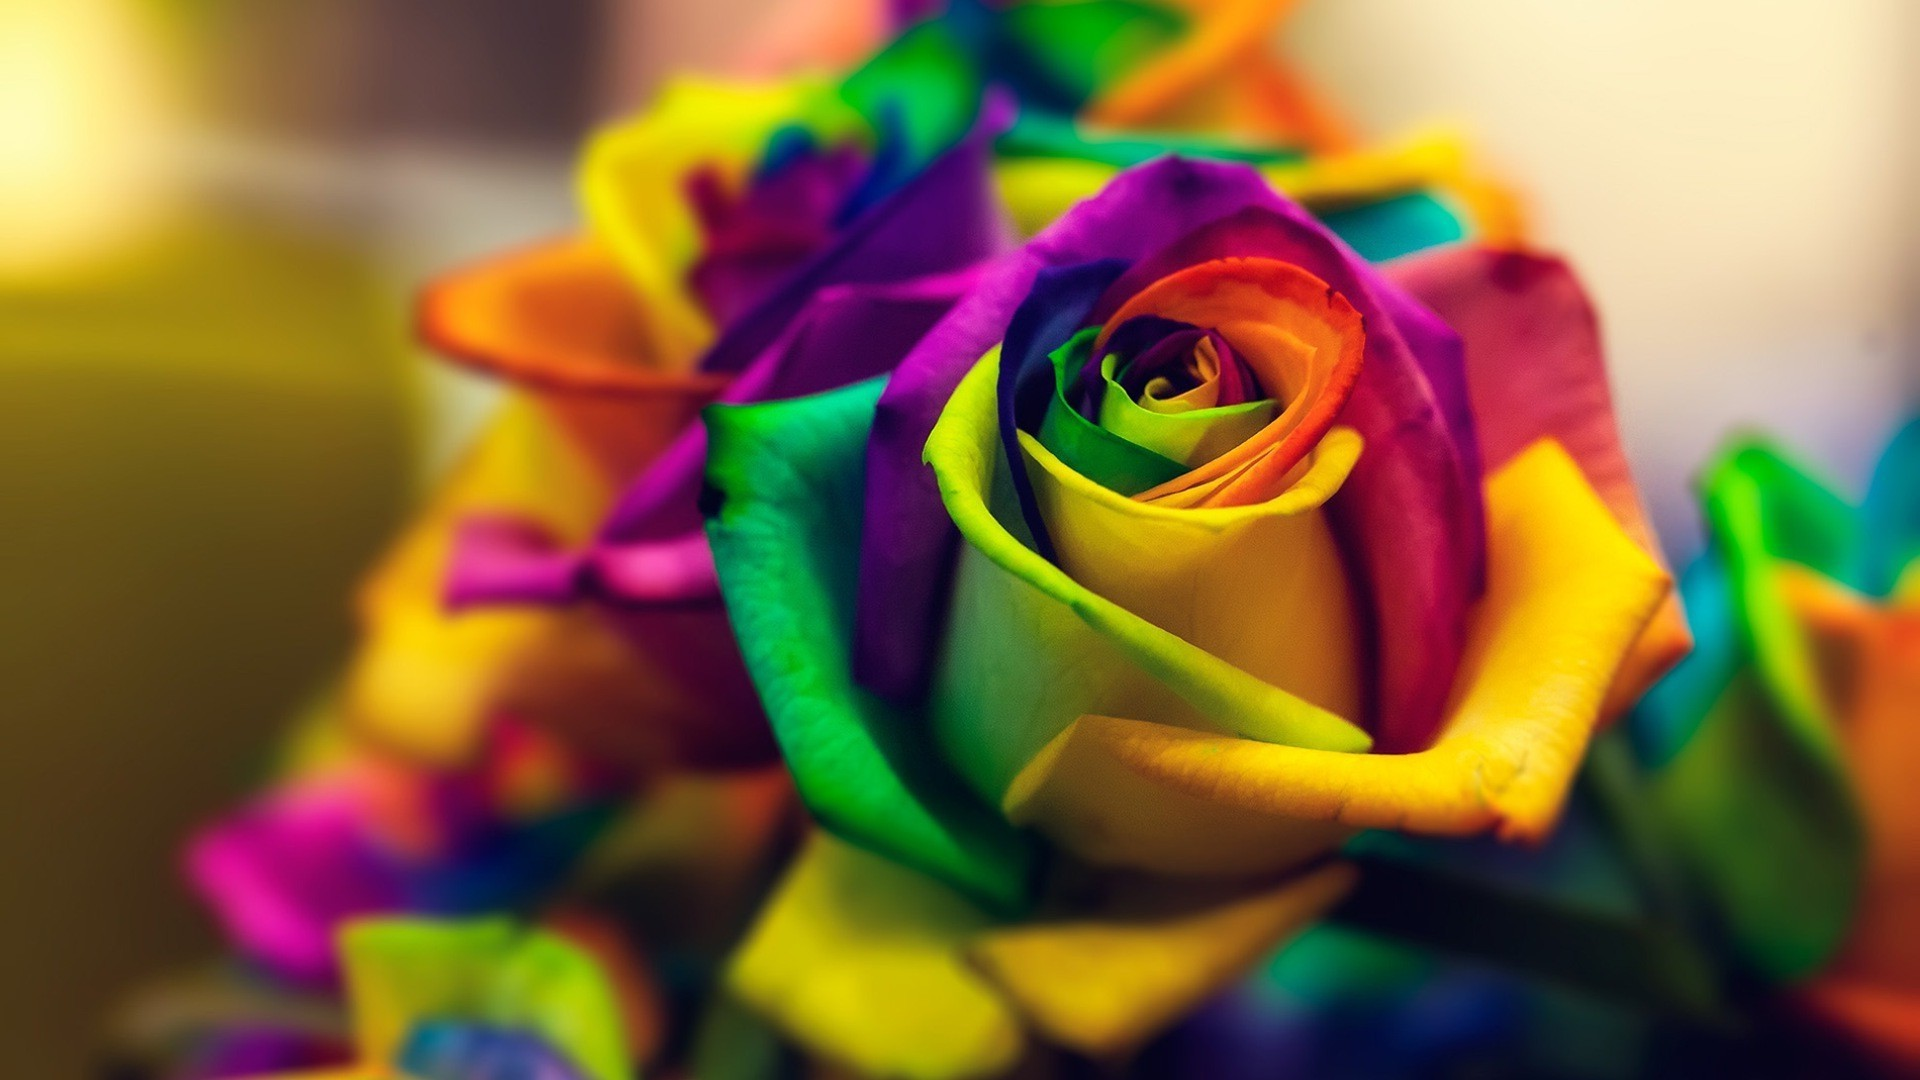 Free Colorful Flower Wallpaper Downloads: Rainbow Roses Wallpaper (48+ Images